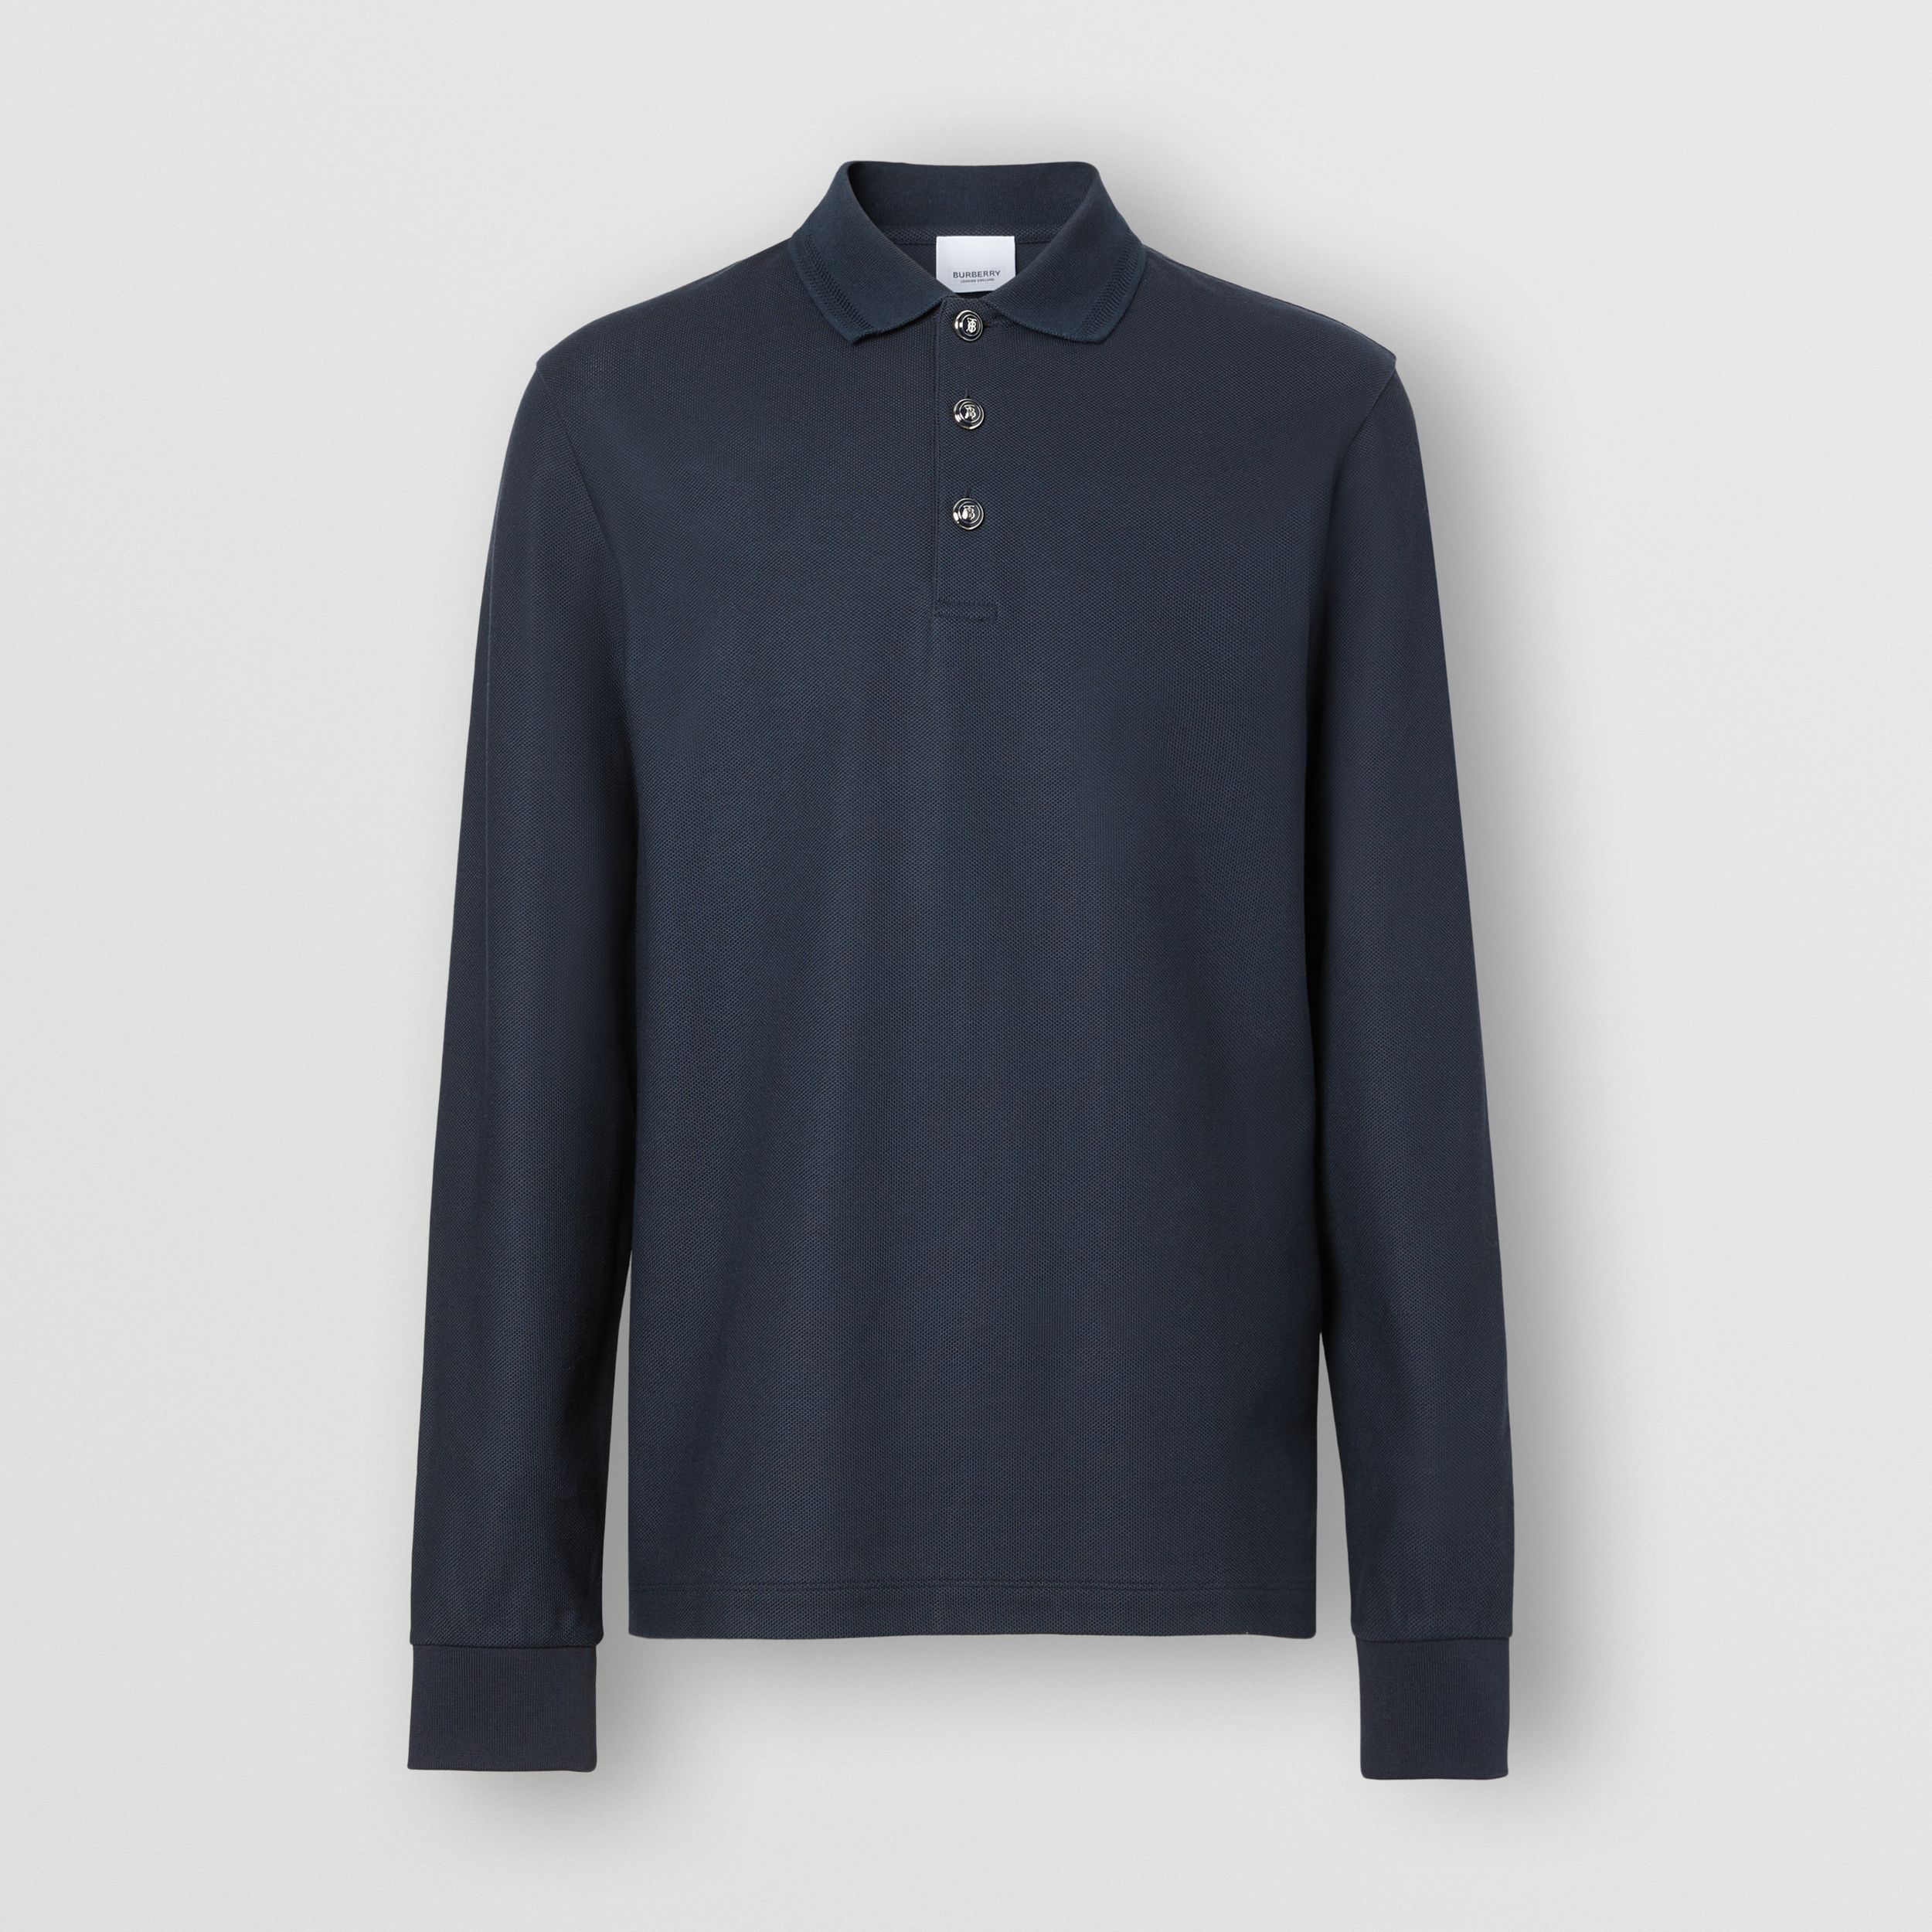 Long-sleeve Cotton Piqué Polo Shirt in Navy - Men | Burberry - 4